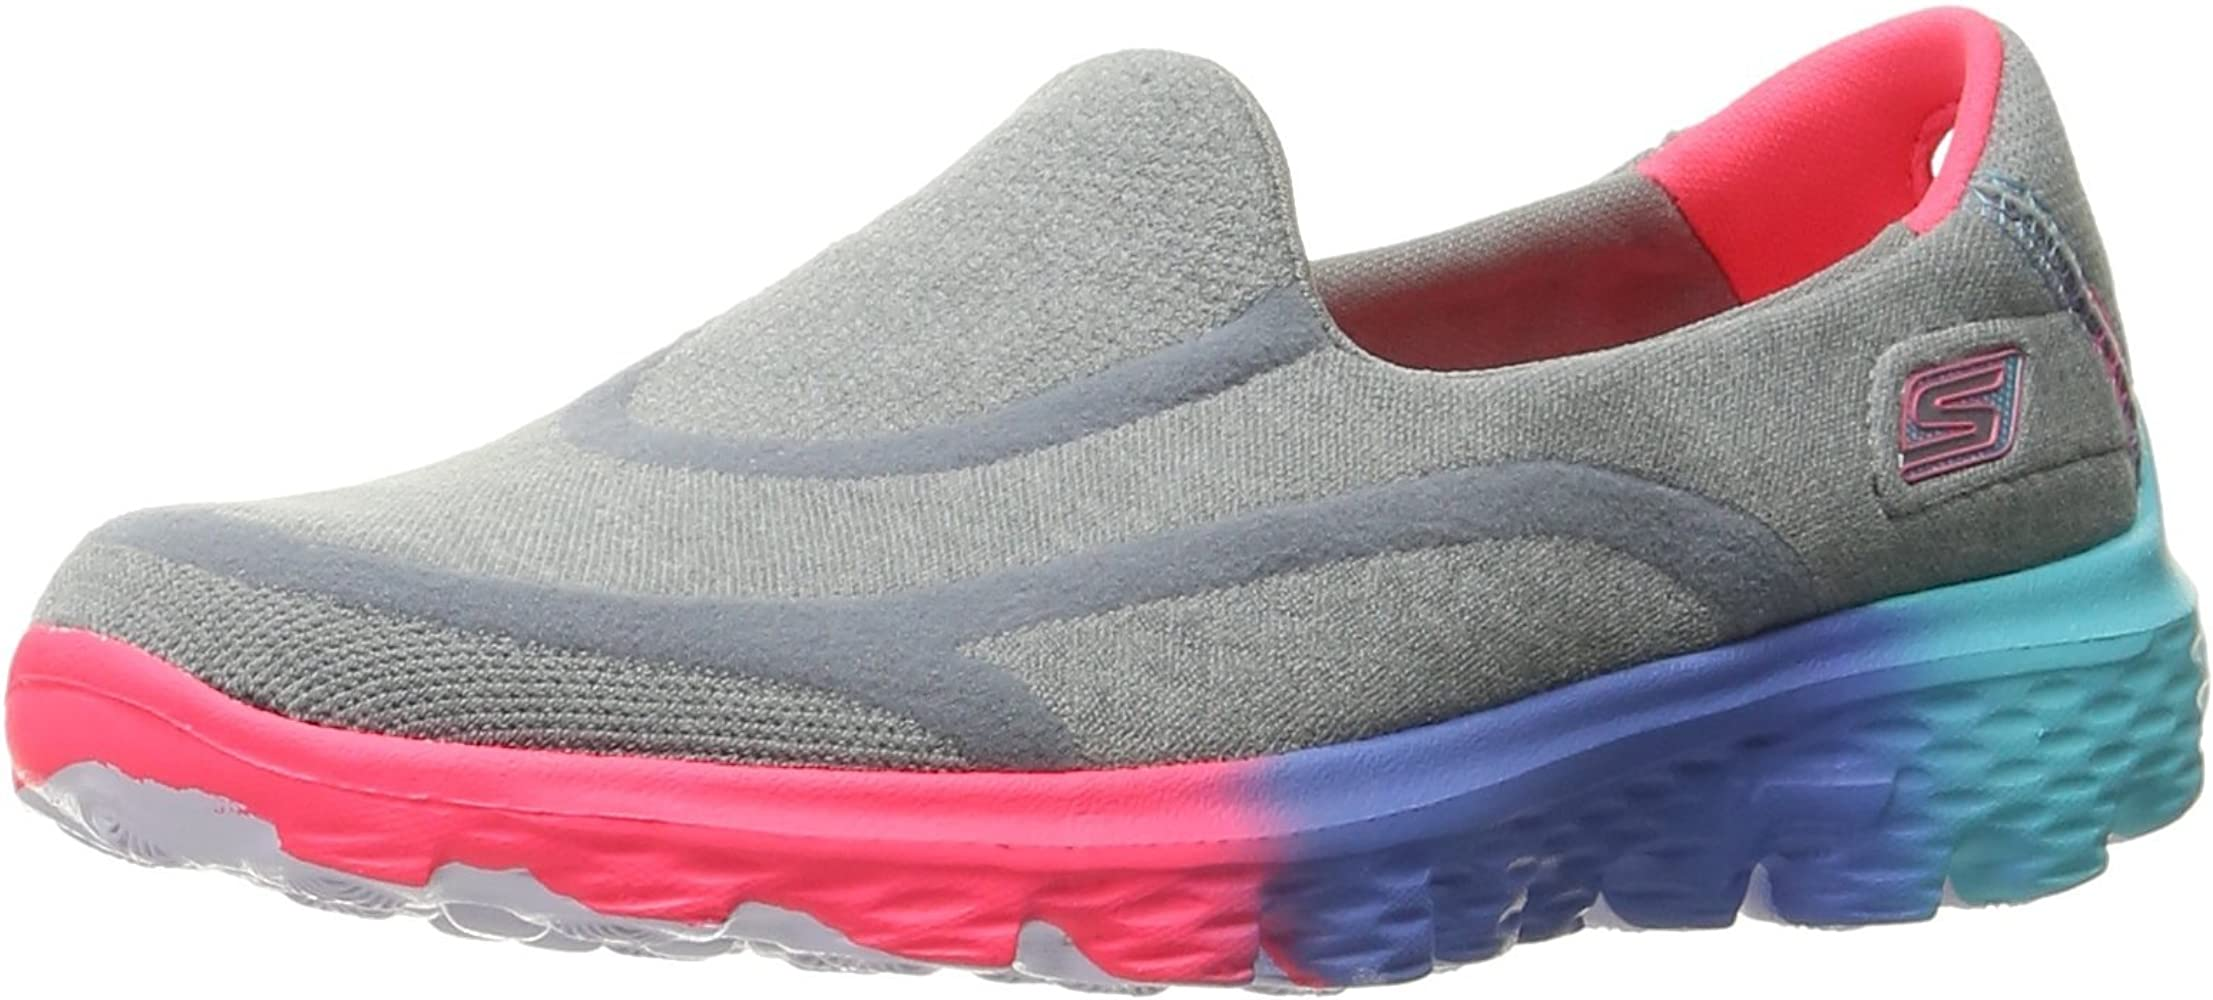 kids skechers go walk